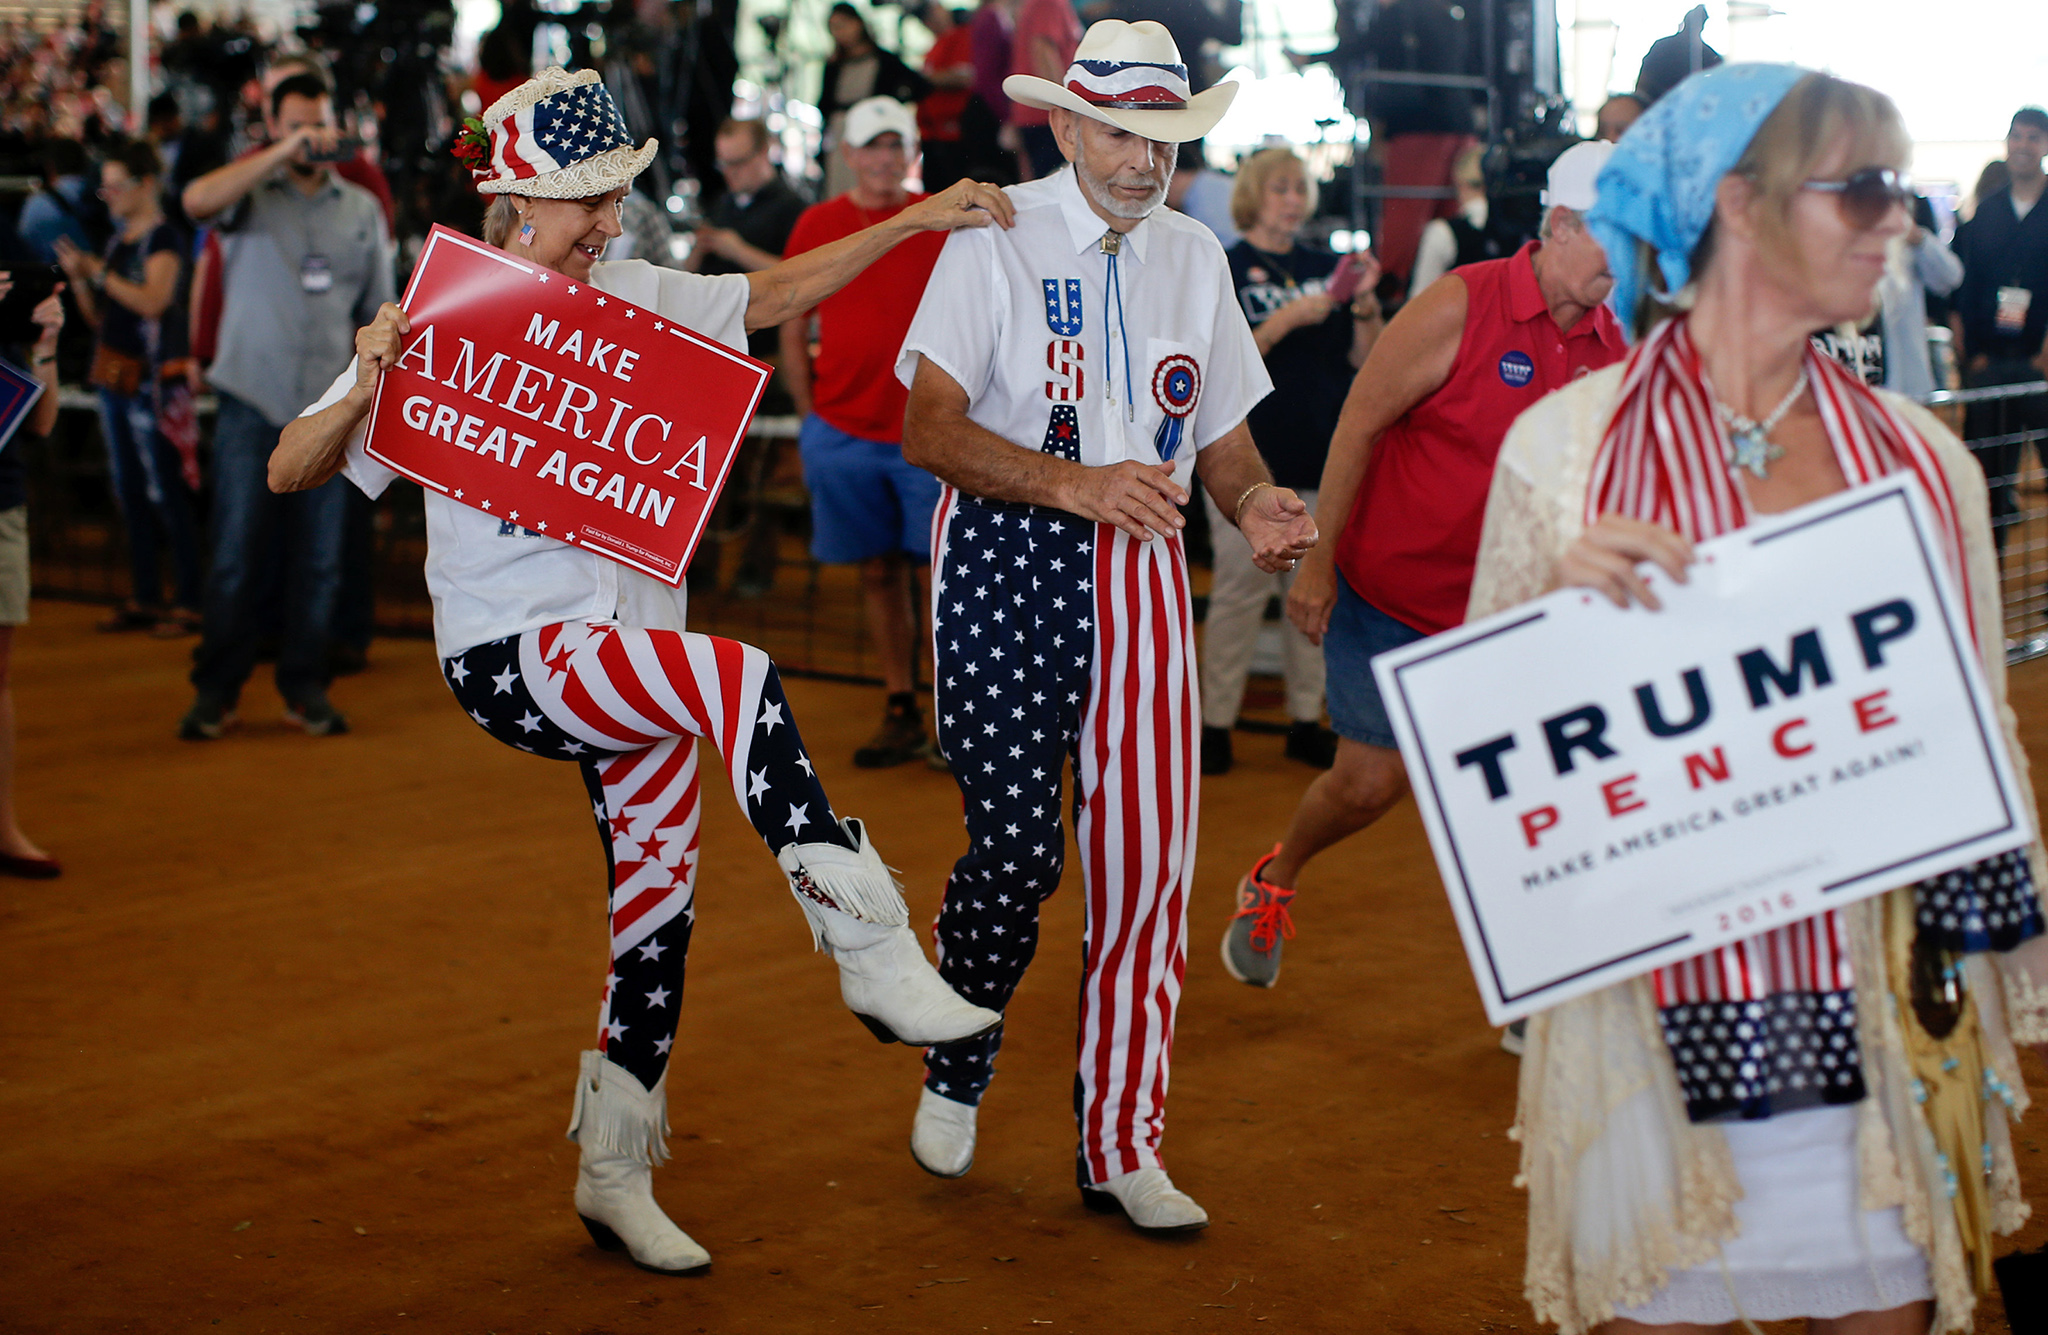 Supporters of Republican U.S. presidential nominee Donald Trump dance at a campaign rally in Ocala, Florida, U.S., October 12, 2016.   REUTERS/Mike Segar